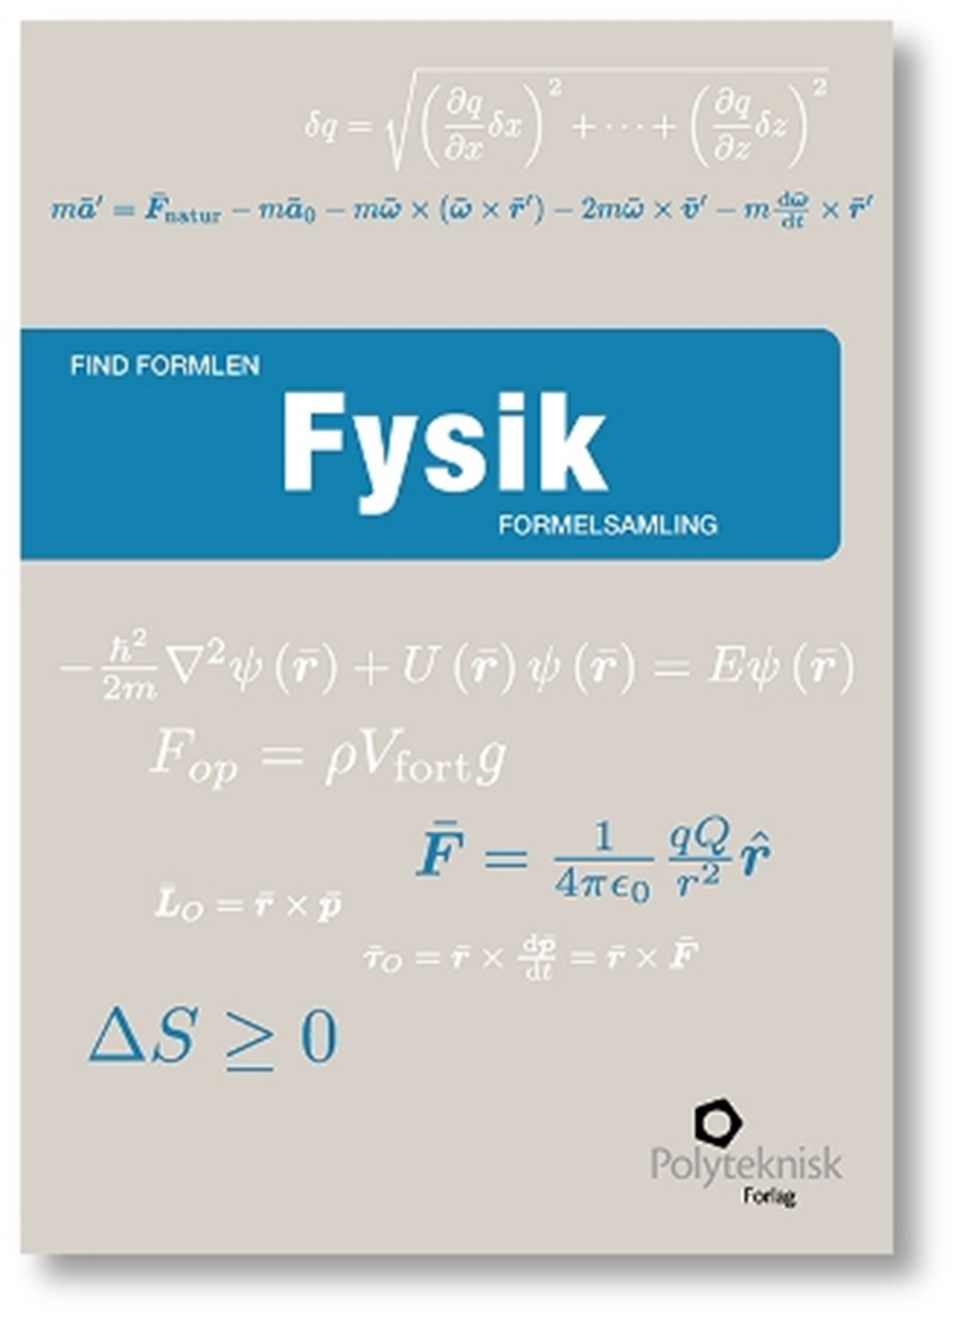 Find formlen - Fysik